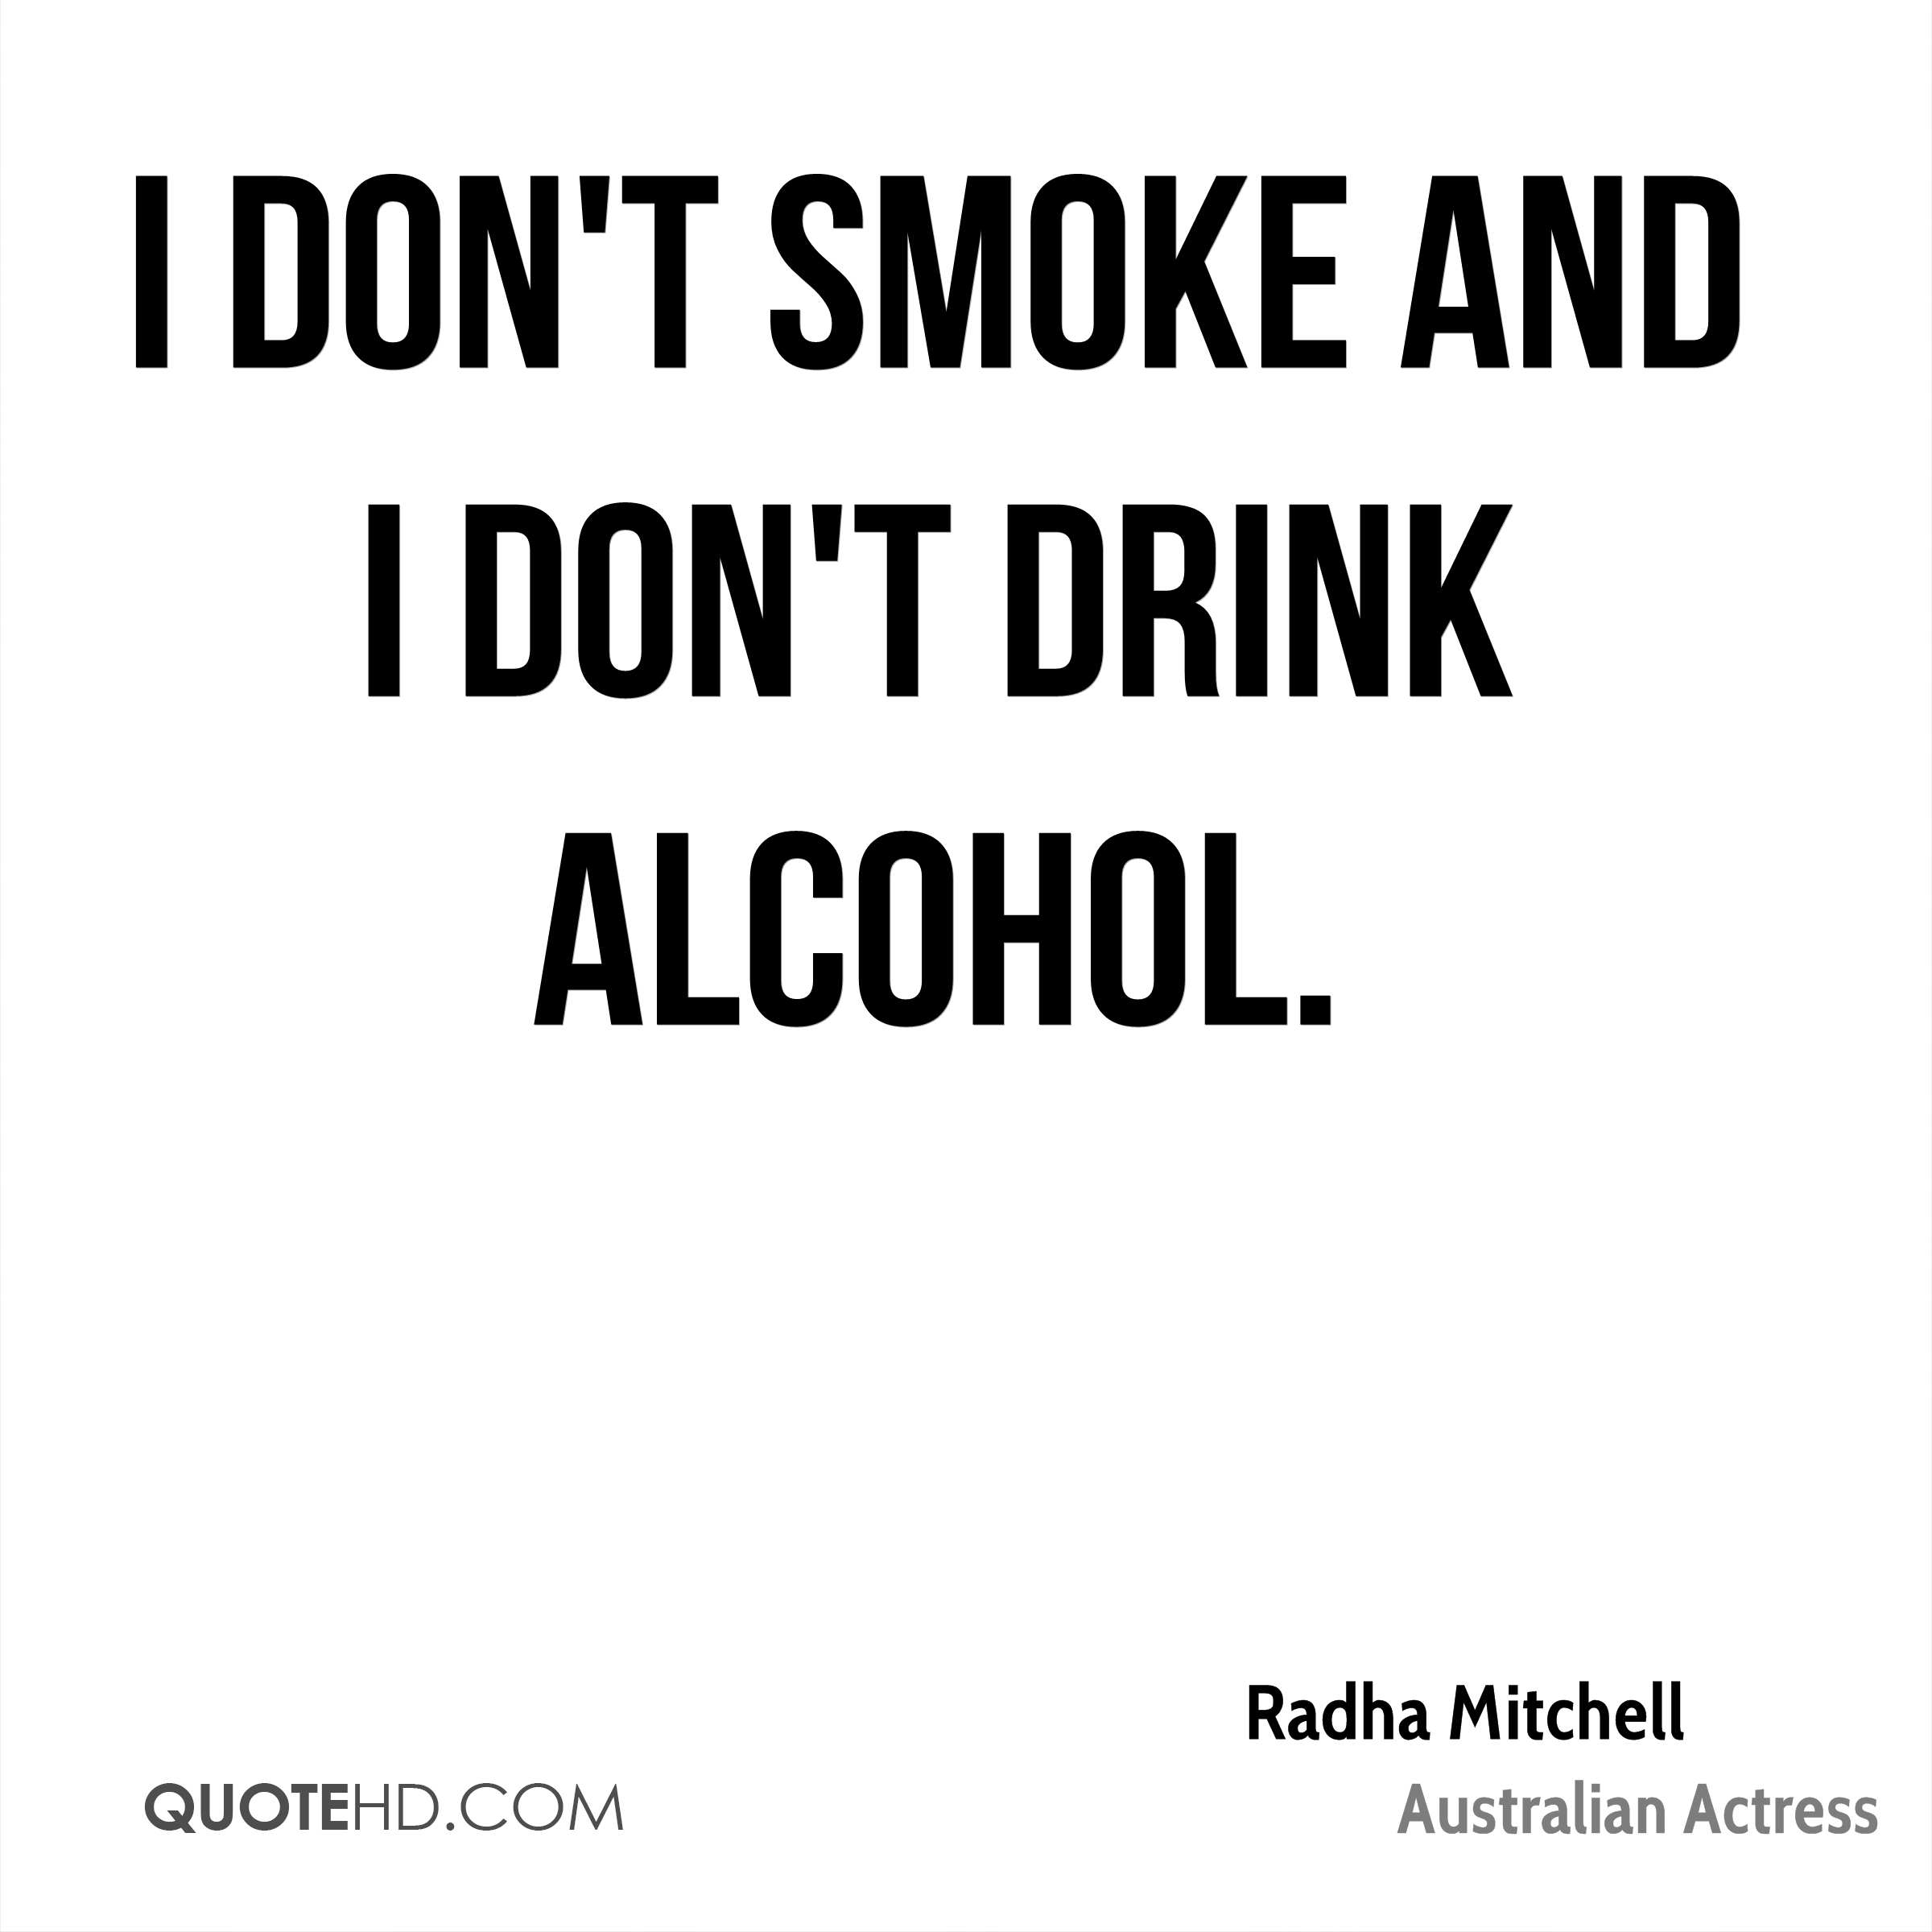 I don't smoke and I don't drink alcohol.